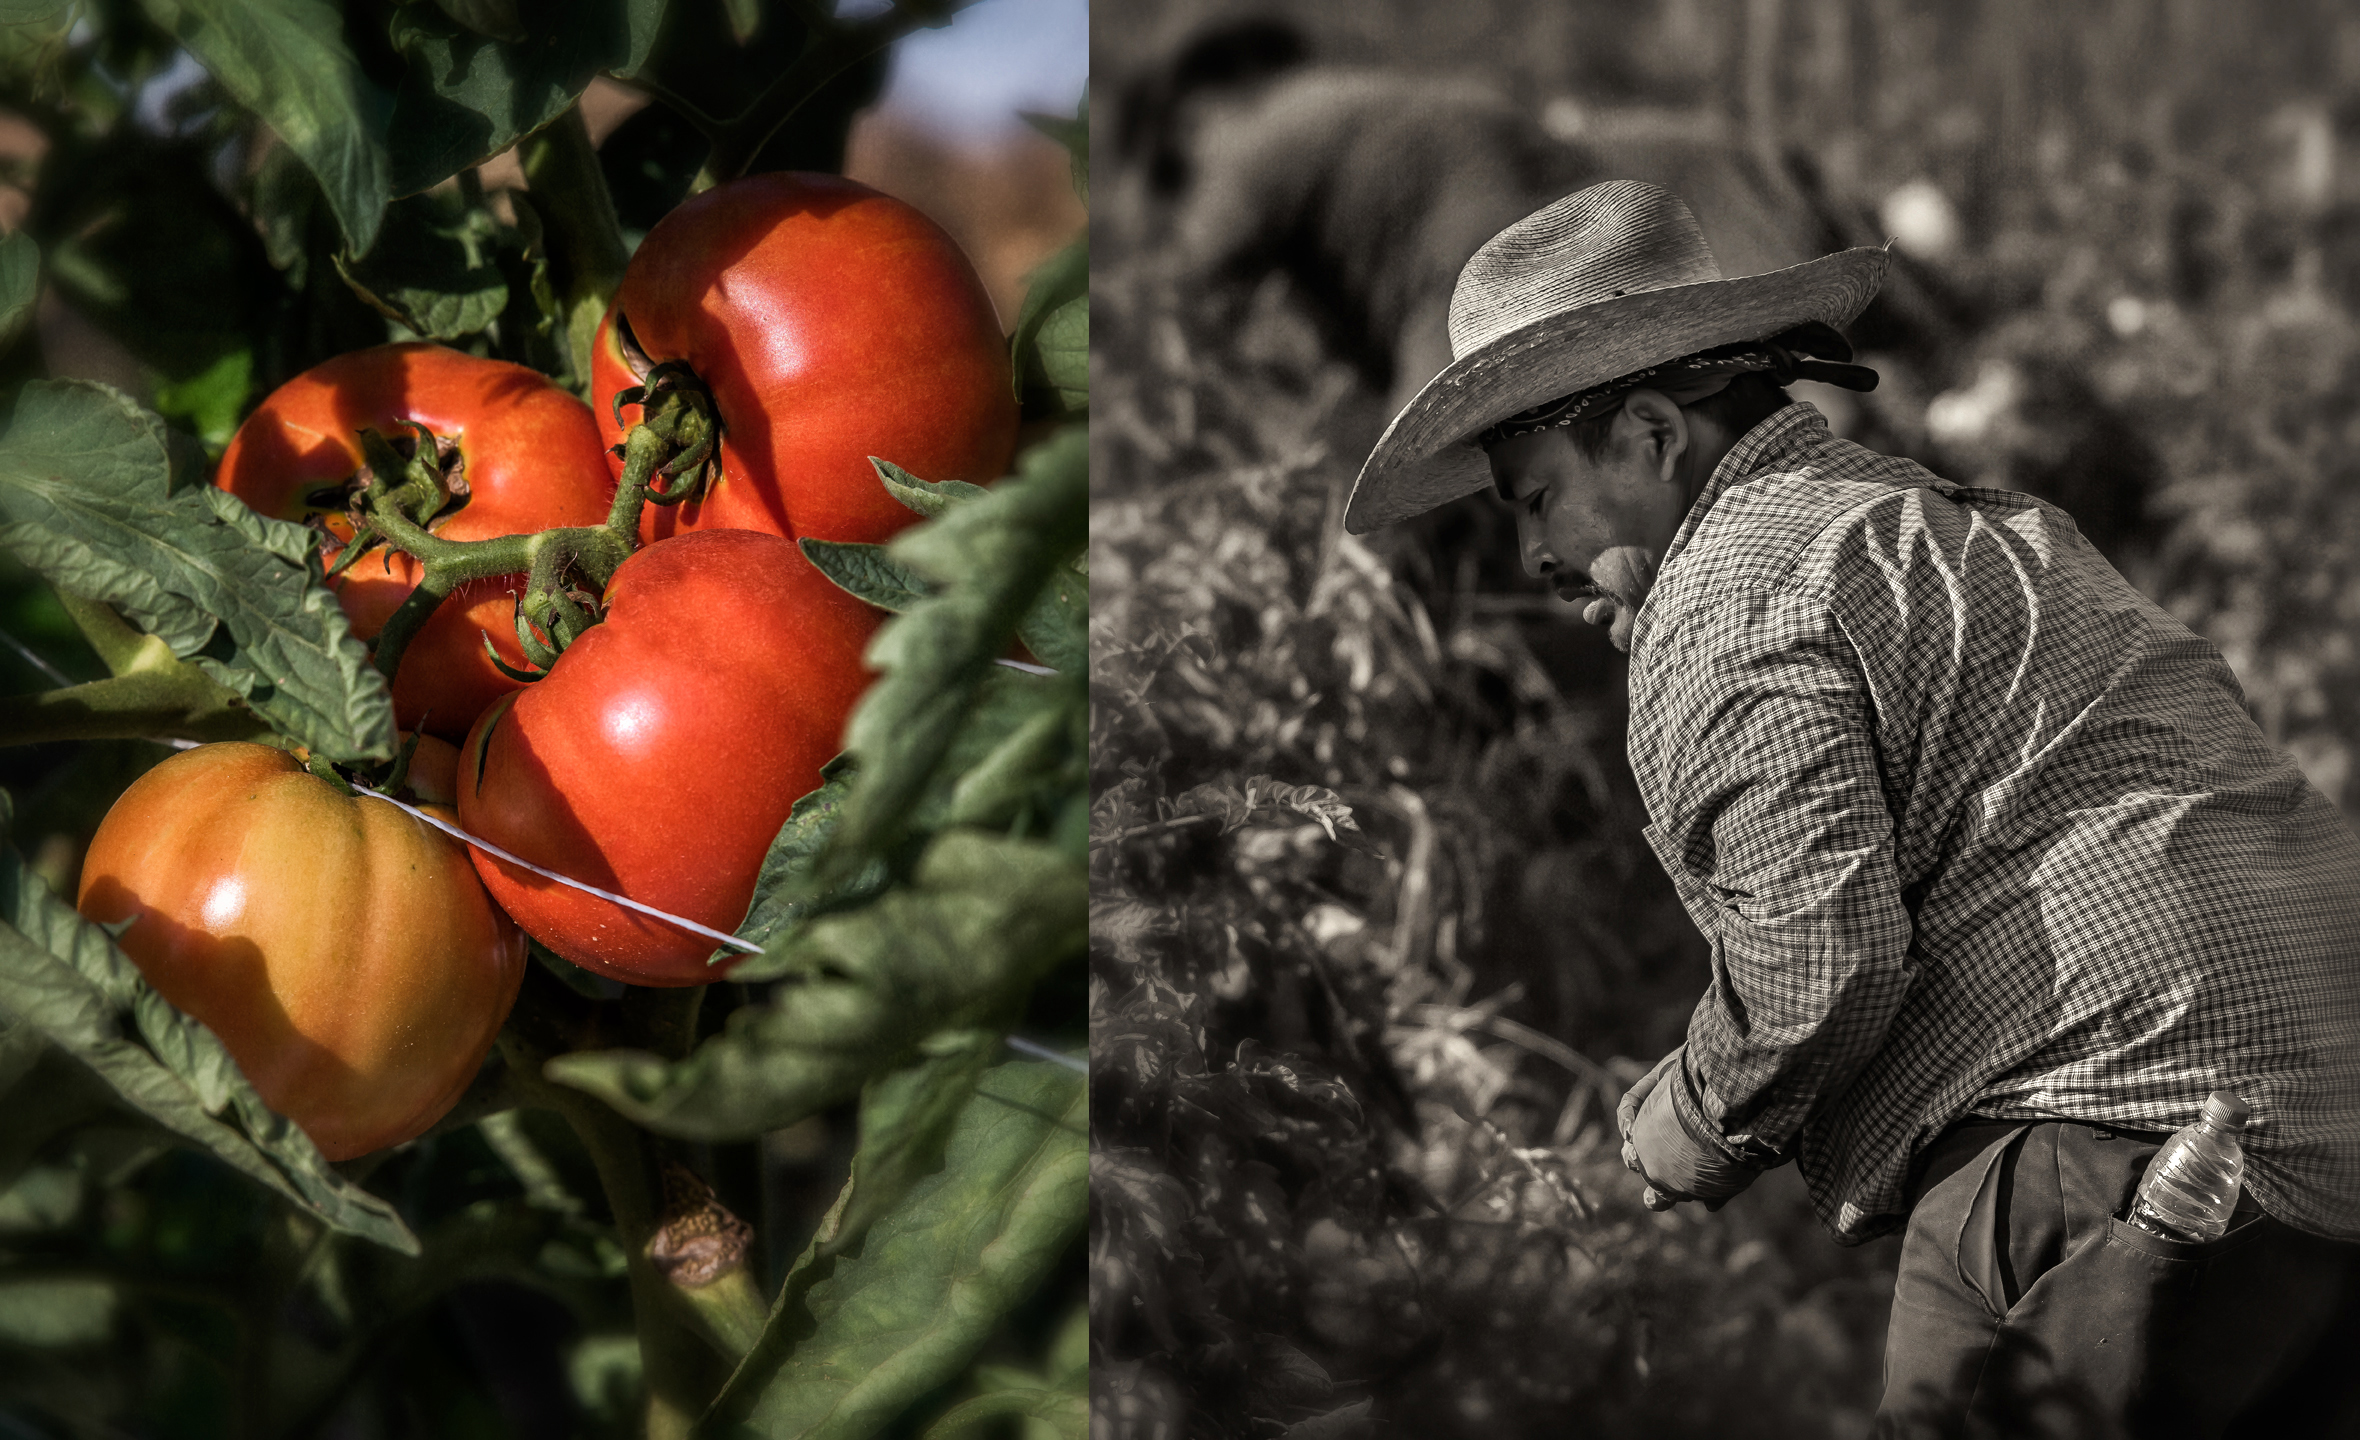 whitaker_picking tomatoes_2_27_18_group_01